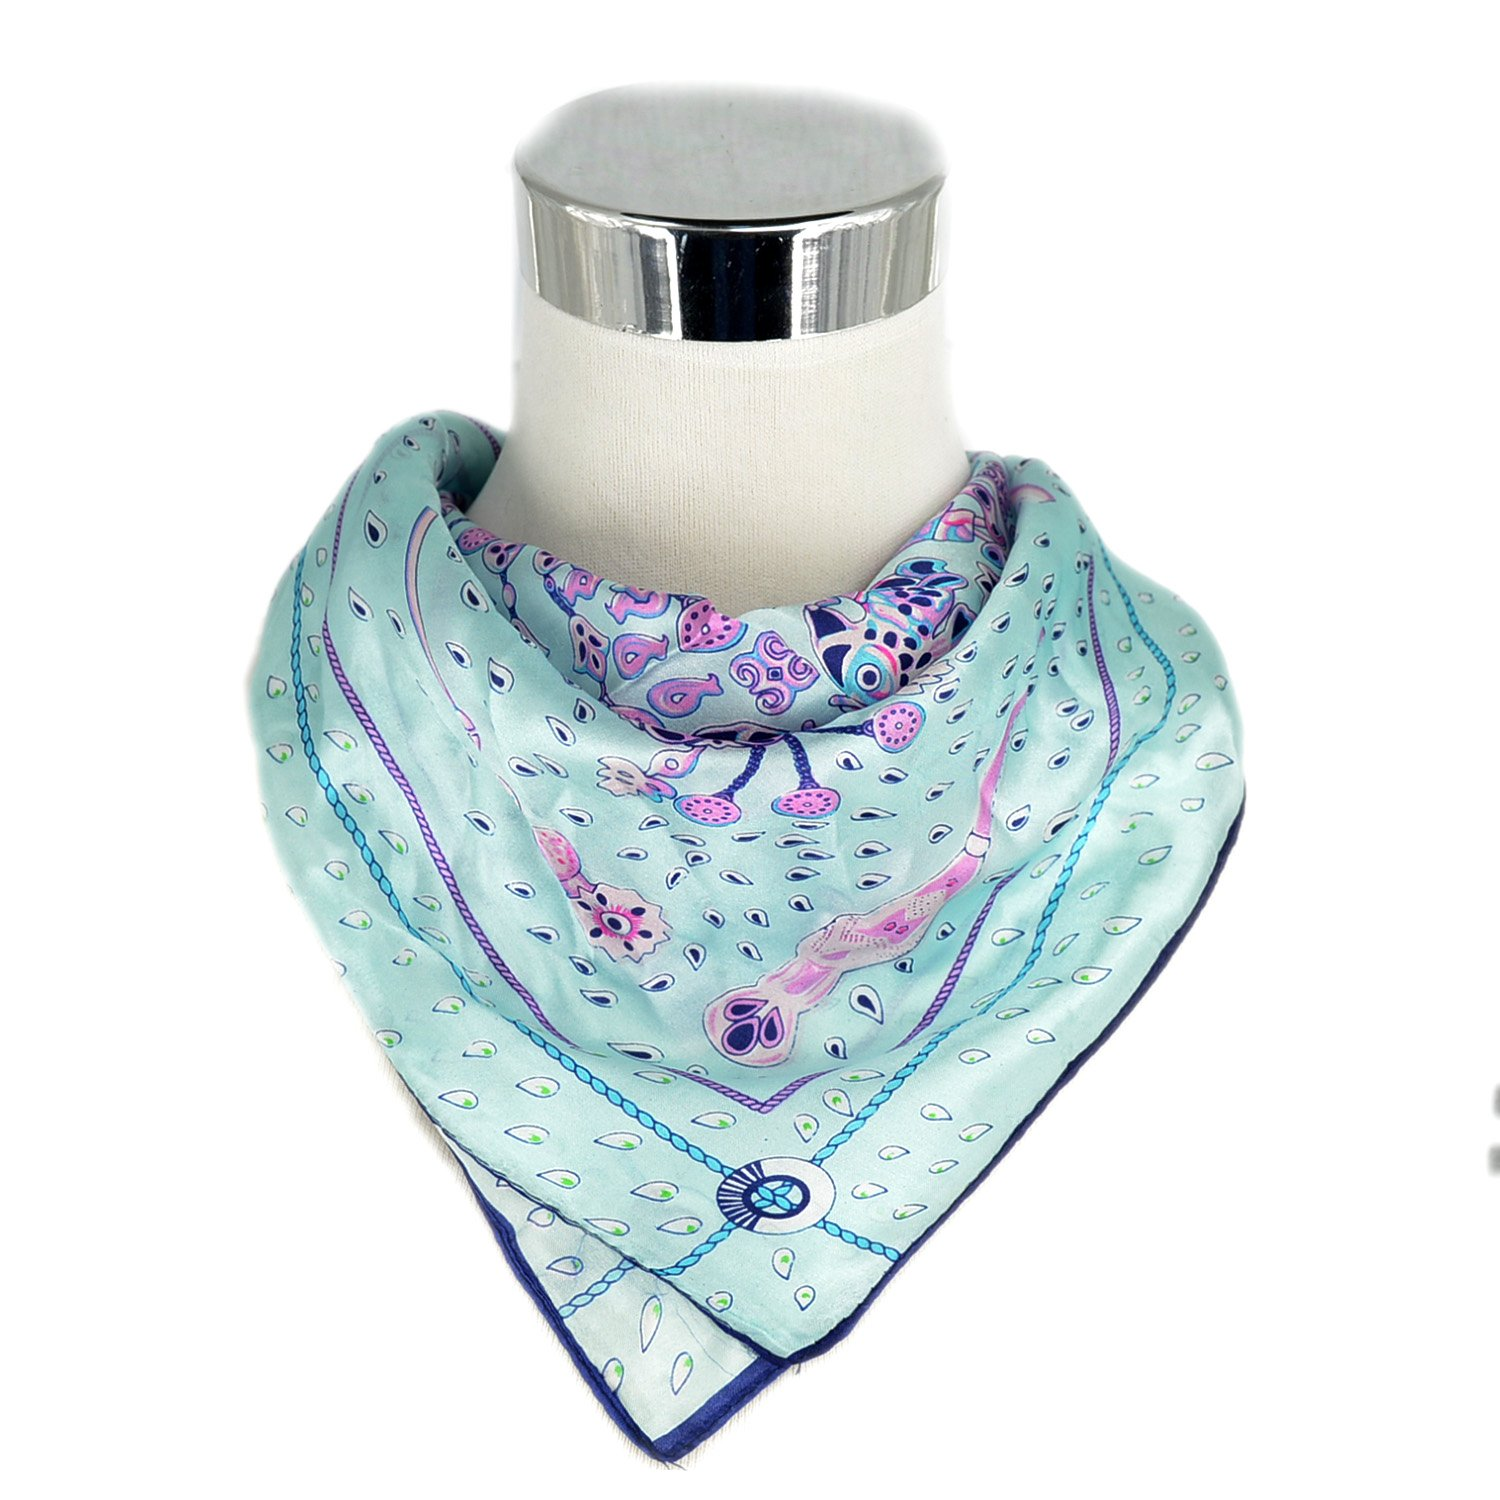 Fashion Small Square Scarf for Women Polka Dot 100/% Silk Ideal Gift Sky Blue